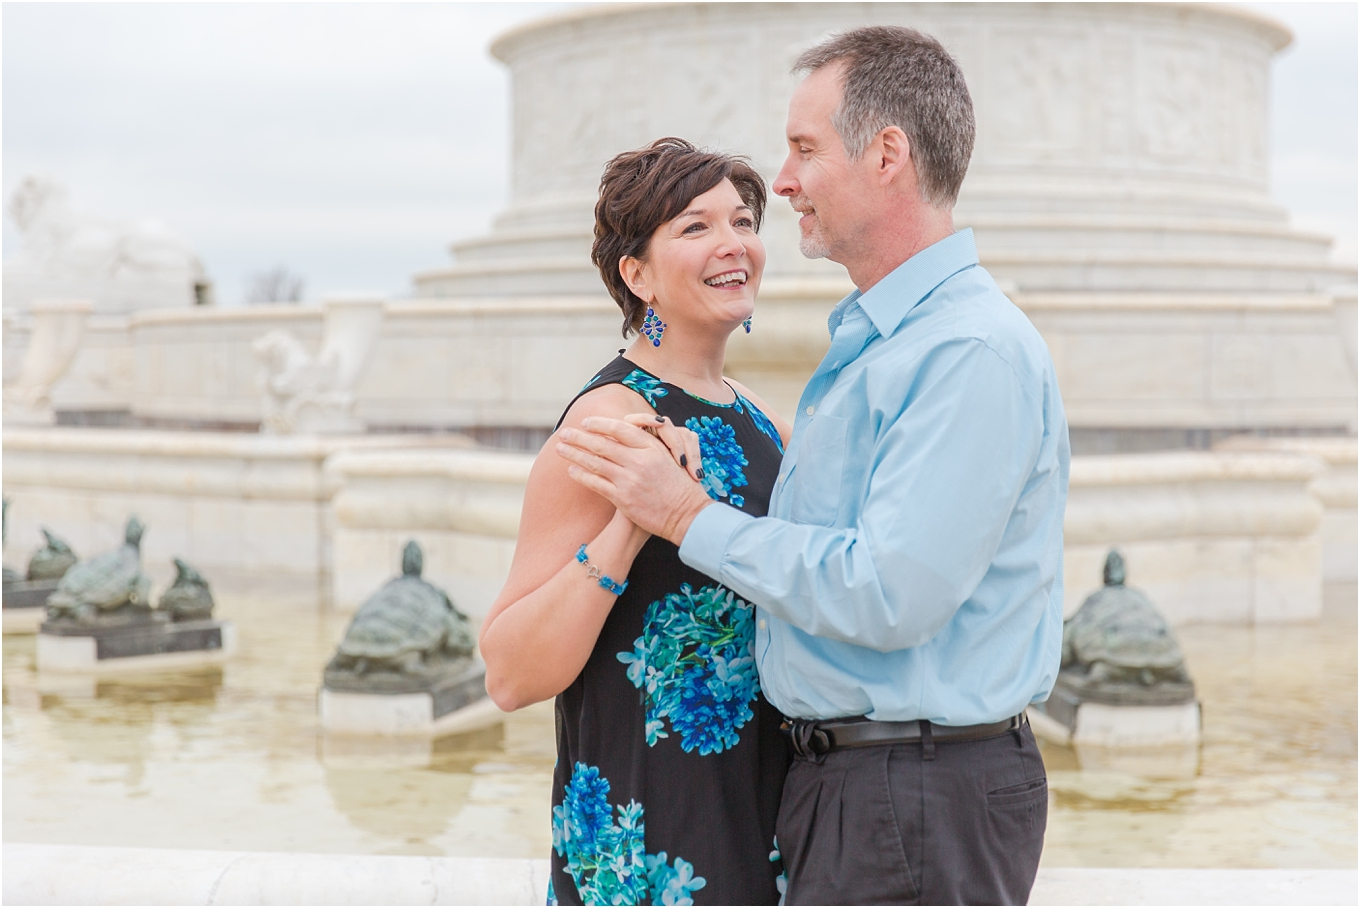 downtown-detroit-engagement-photos-on-belle-isle-by-courtney-carolyn-photography_0016.jpg